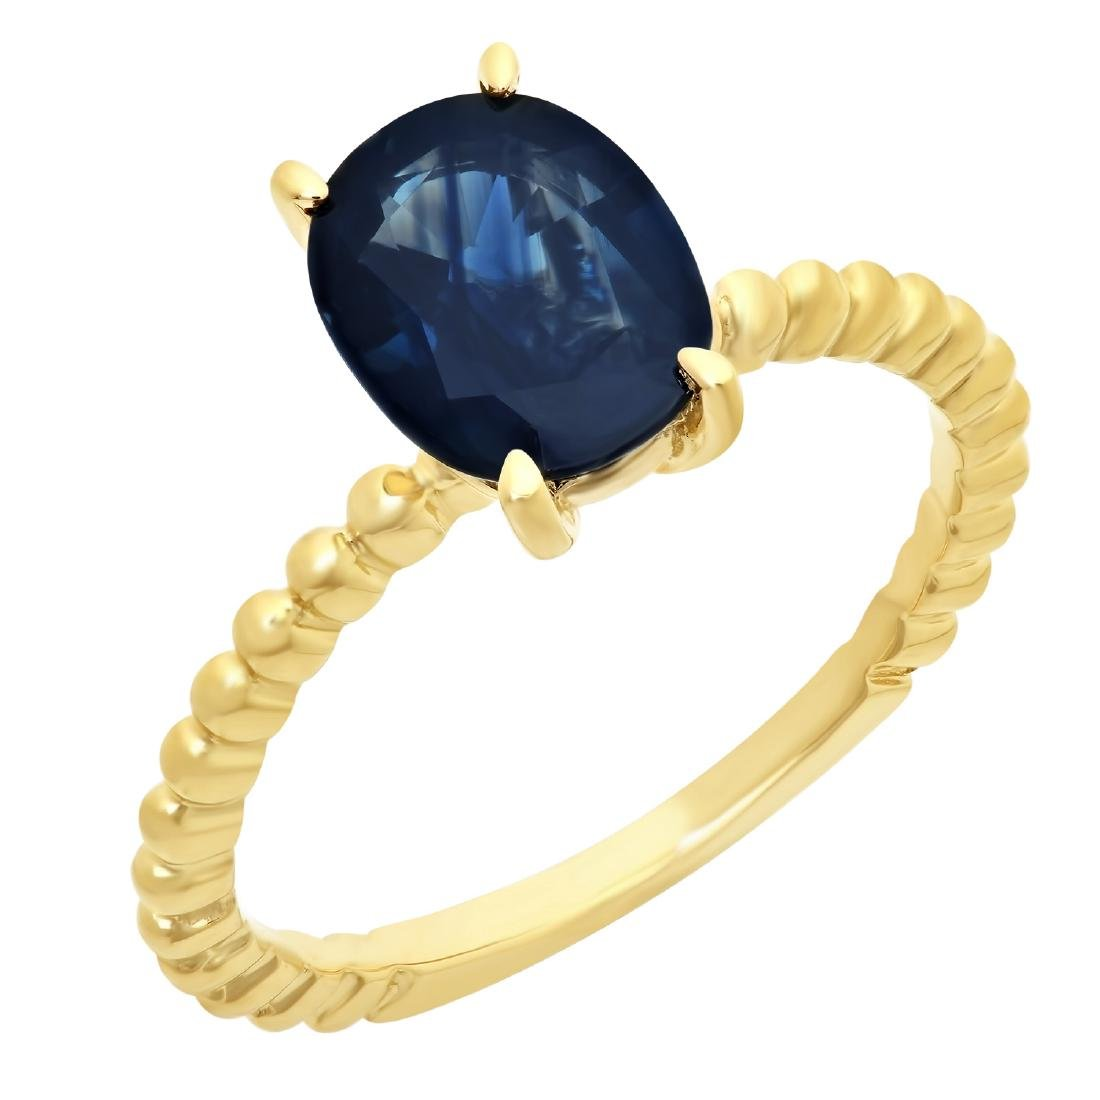 2.00 Carat Natural Sapphire 18K Solid Yellow Gold Ring